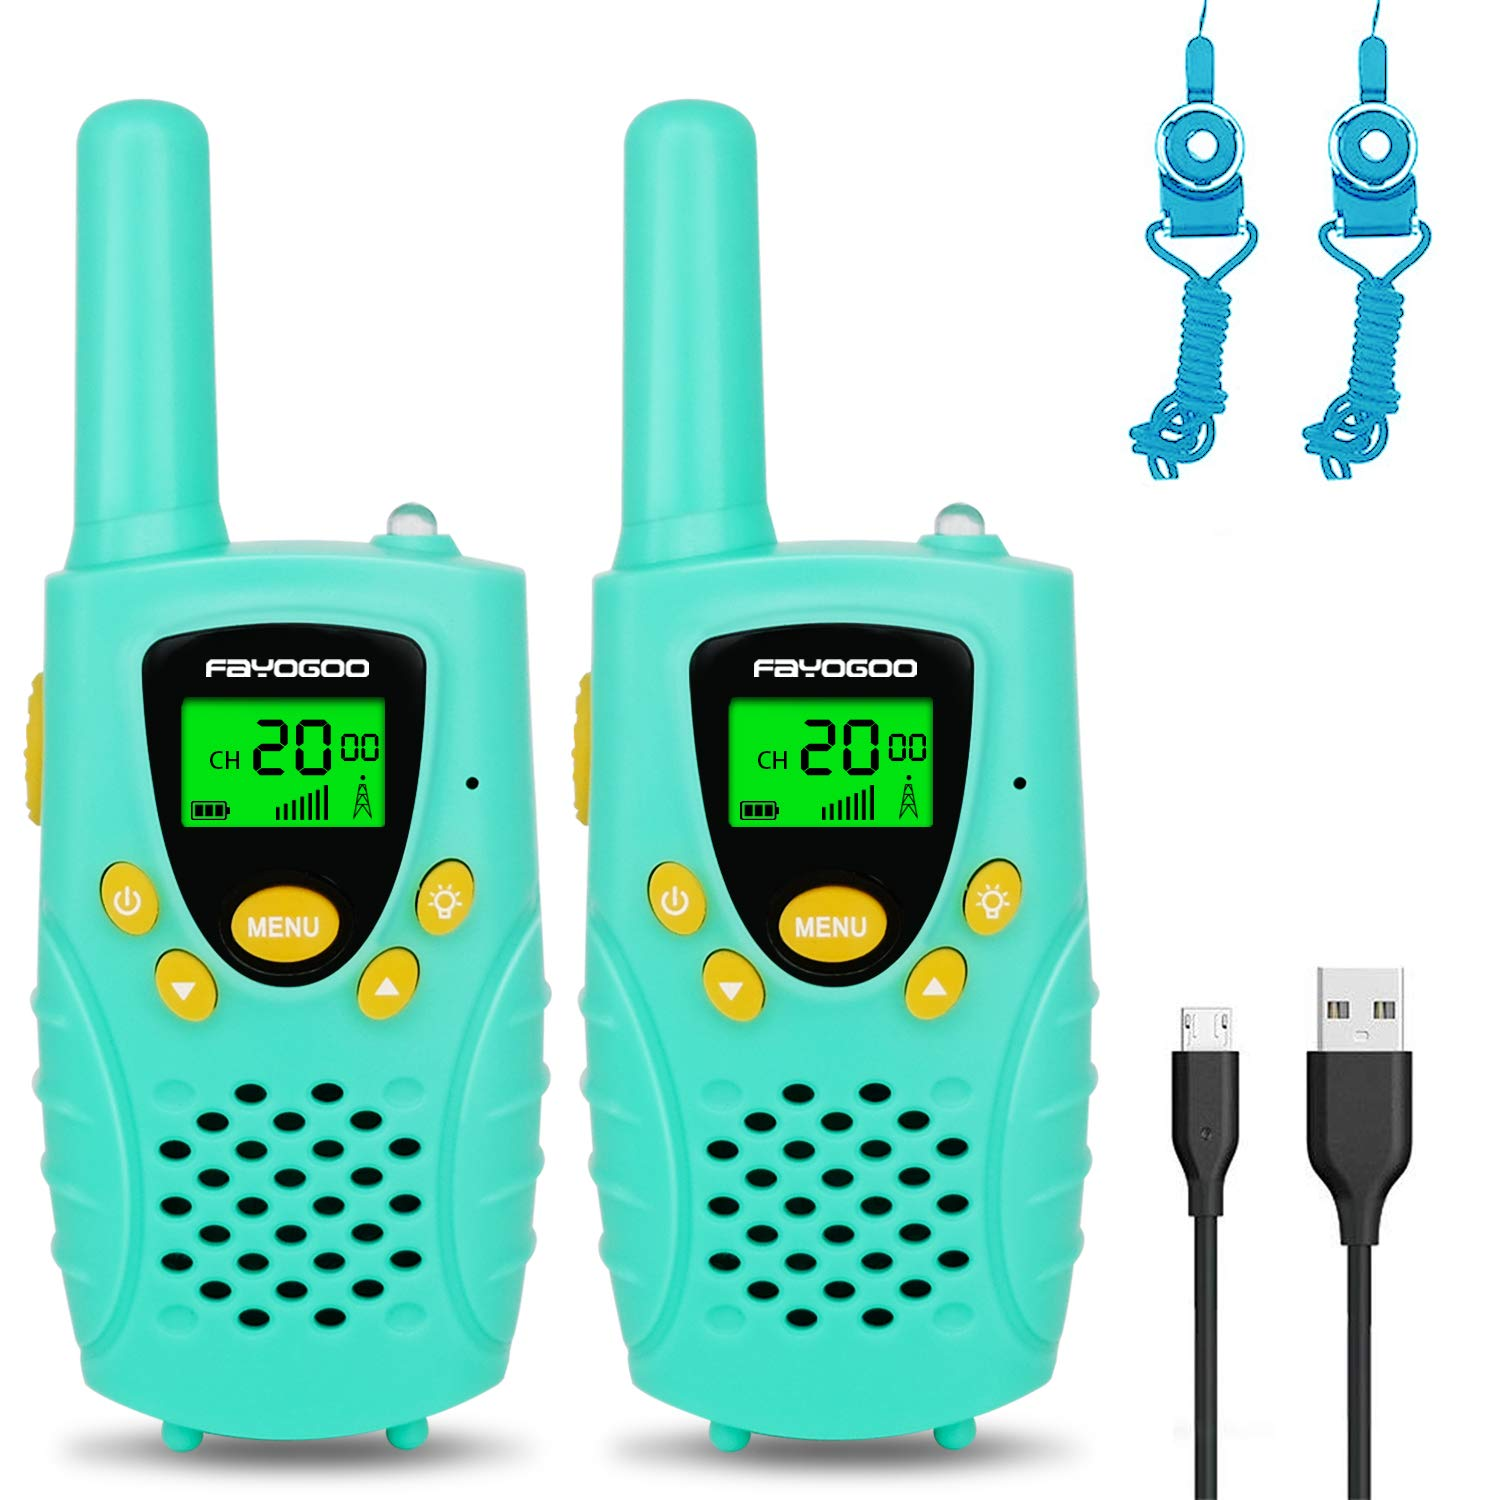 FAYOGOO Kids Walkie Talkies, 22-Channel FRS/GMRS Radio, 4-Mile Range Two Way Radios with Flashlight and LCD Screen, and Toys for 3-12 Year Old Boys and Girls (Mint Green) by FAYOGOO